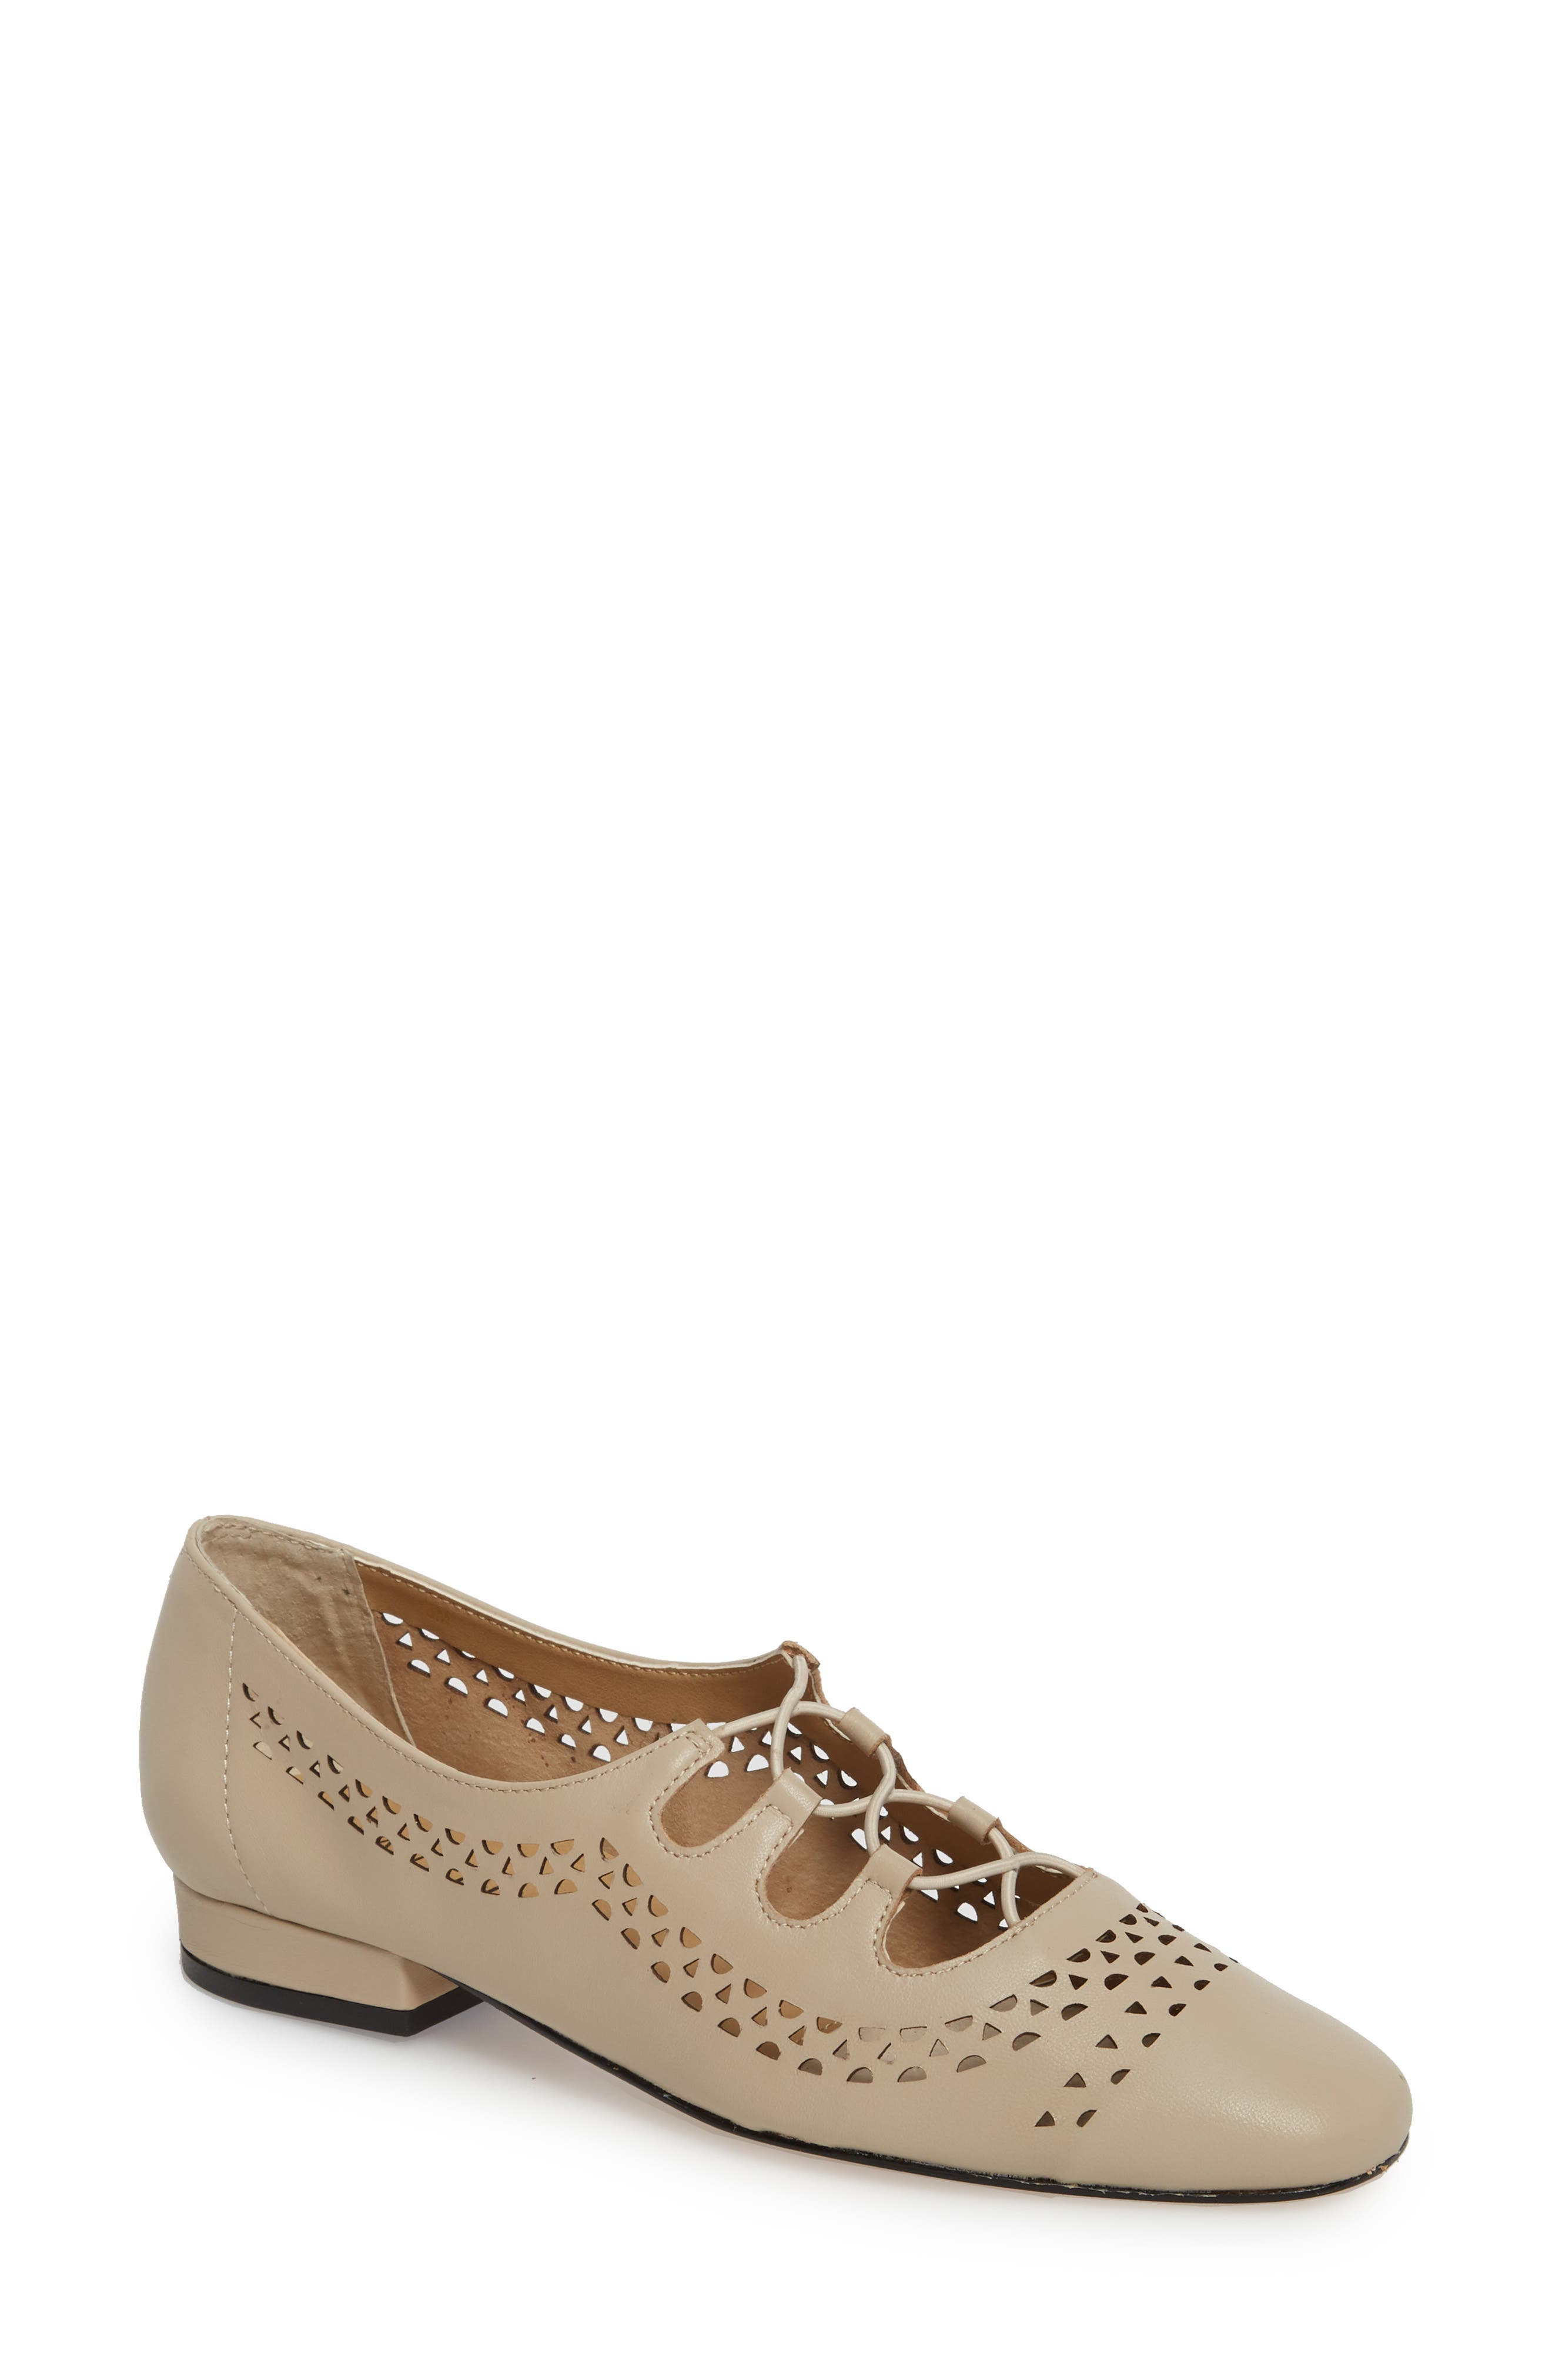 Fabra Perforated Oxford Slip-On,                         Main,                         color, Ecru Leather